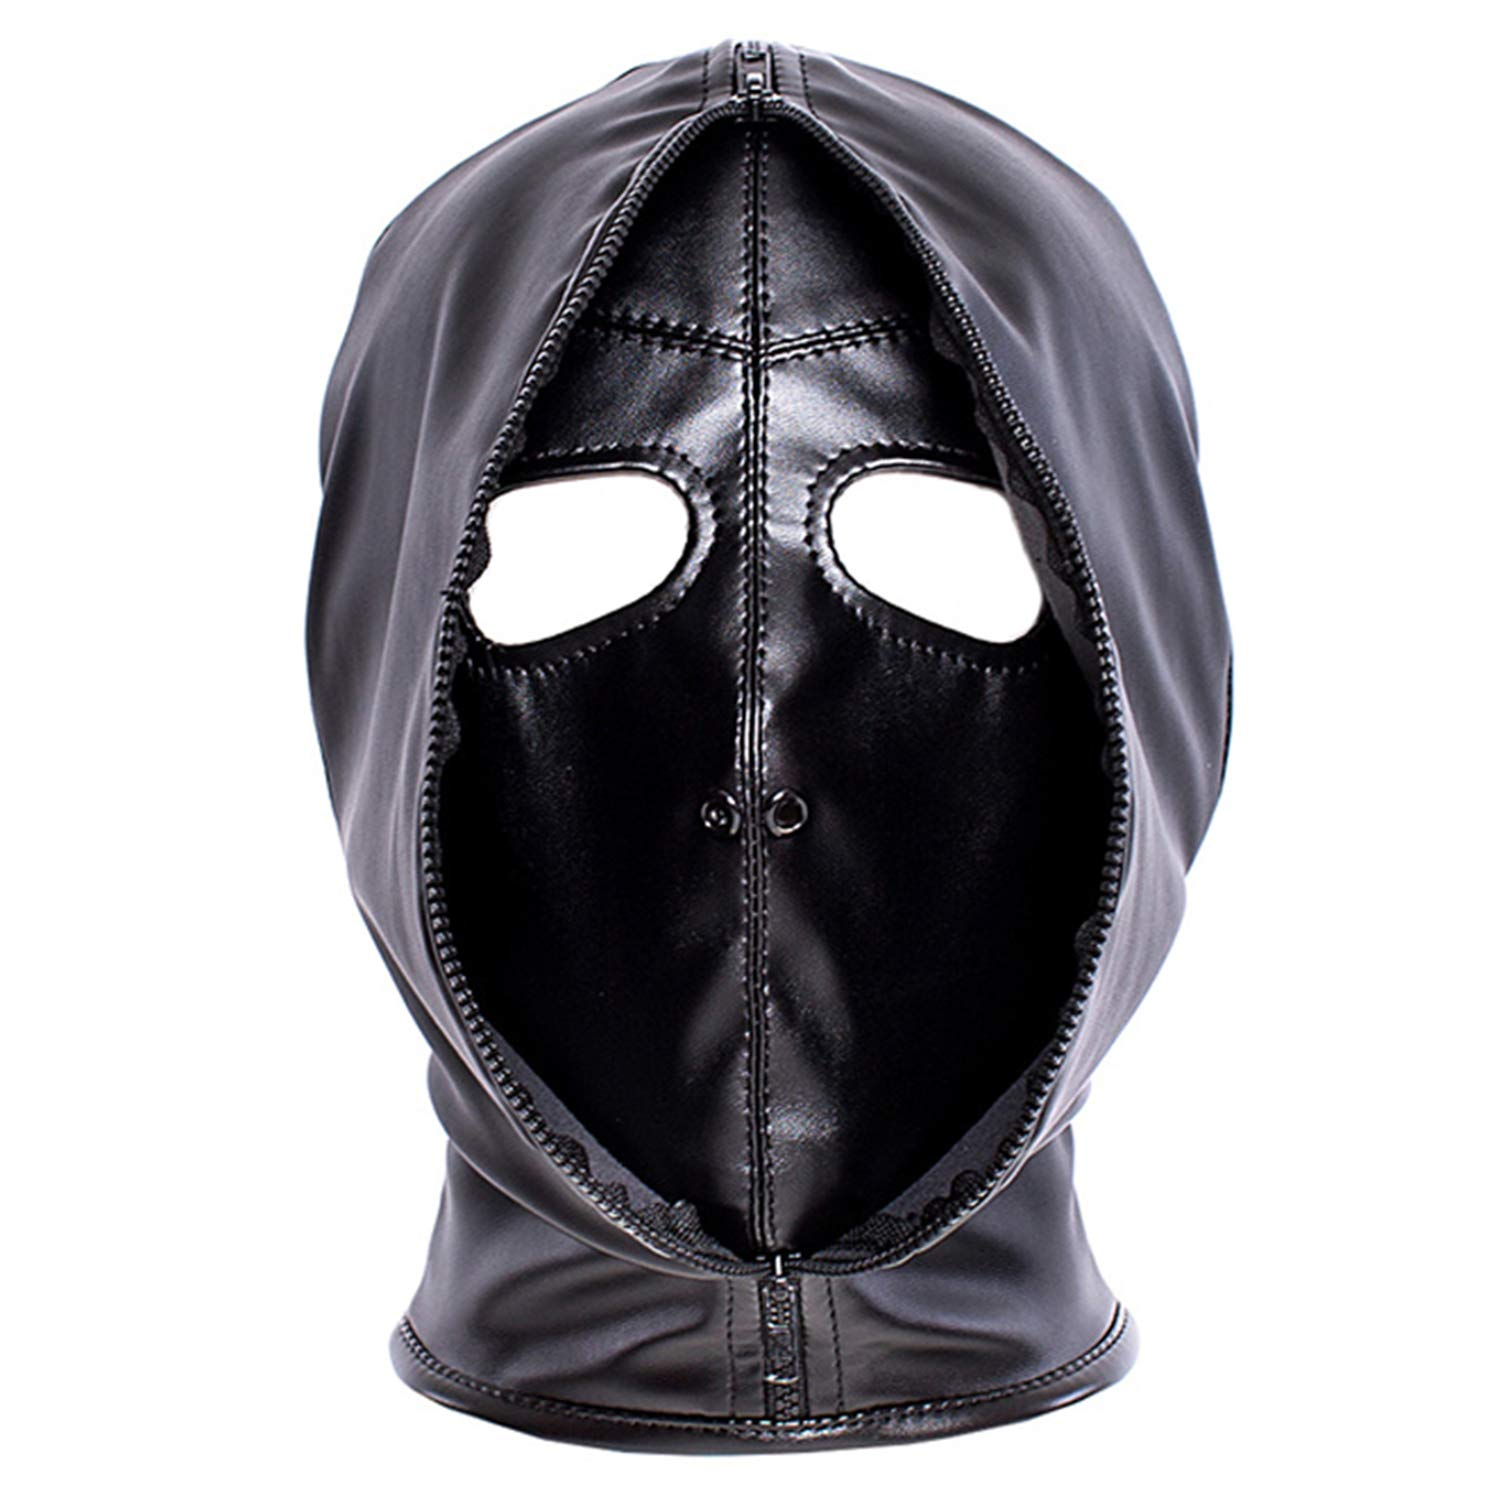 Leather Costume Head Mask Hood - Cosplay Black Soft Leather Mask Full Face Mask Nose Holes Breathable Unisex Halloween Masquerade Mask (Male size)